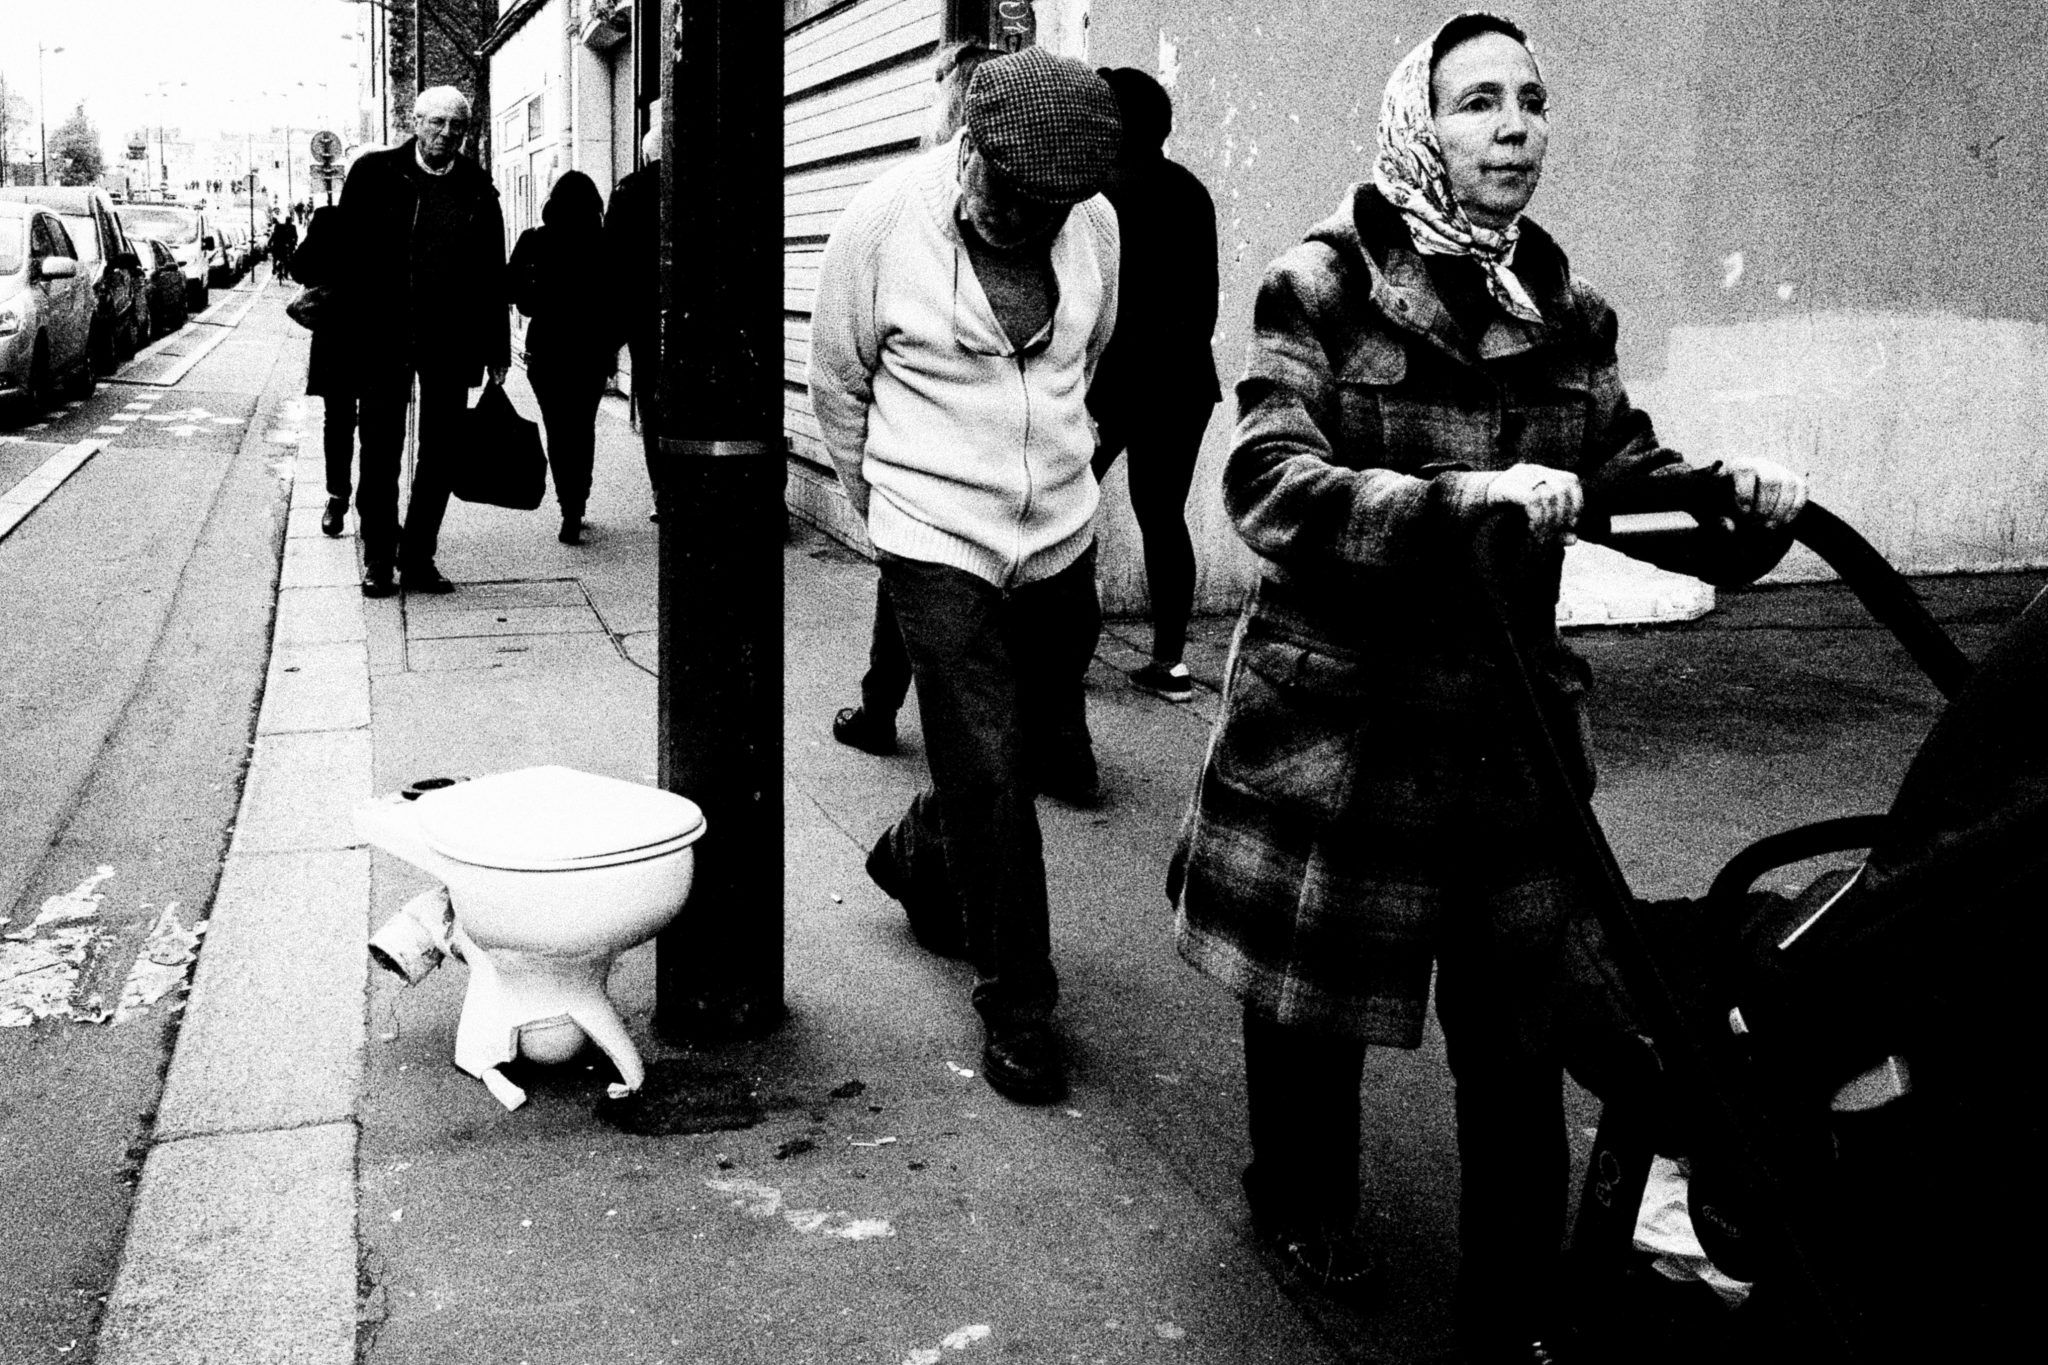 People stroll by a toilet on the street in the 19th arrondissement. Shot with a Ricoh GR2 by Jay Sennett.